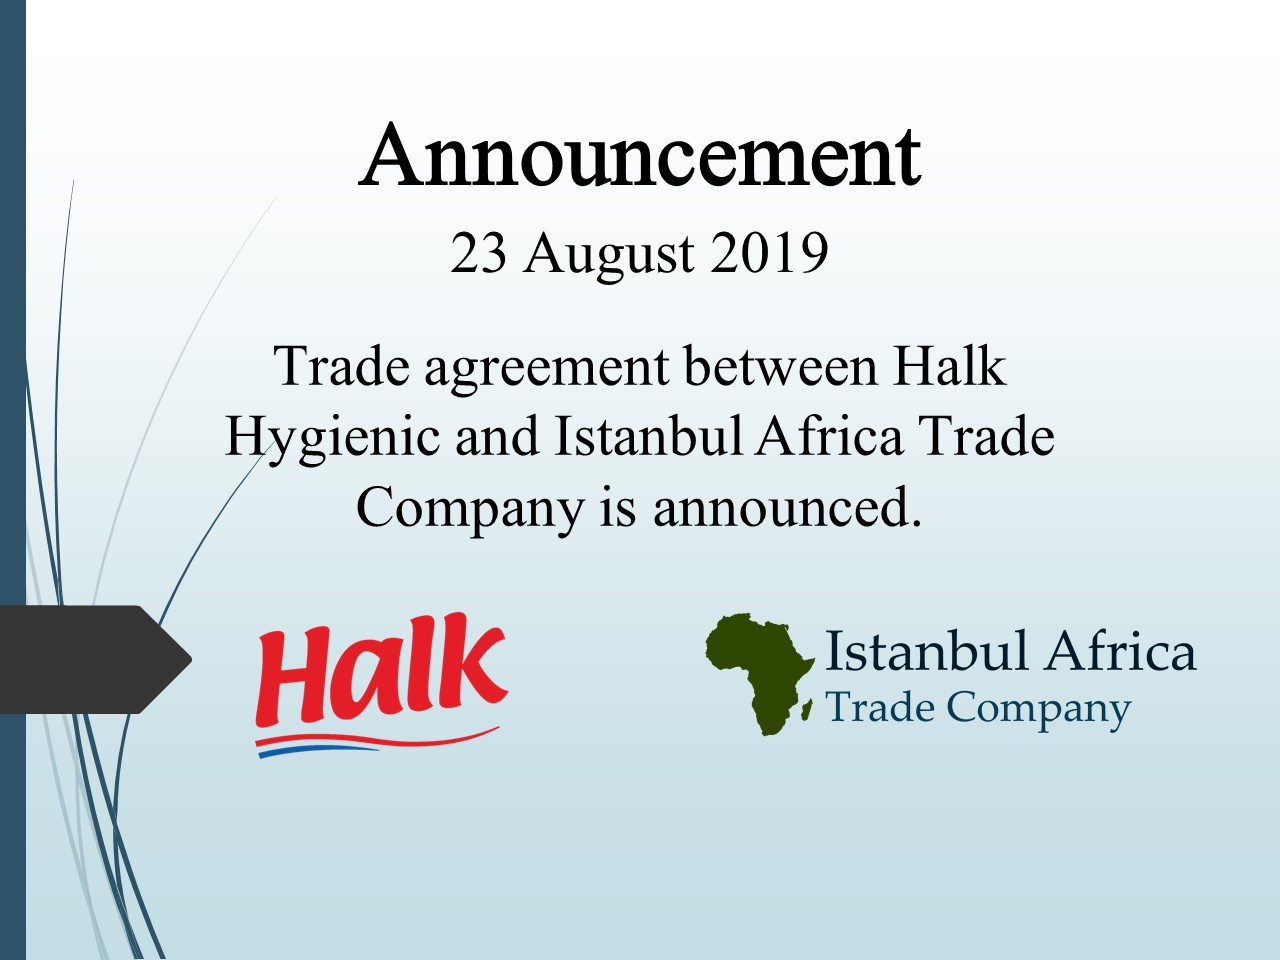 Istanbul Africa Trade Company - Bridge Between Africa and Turkey